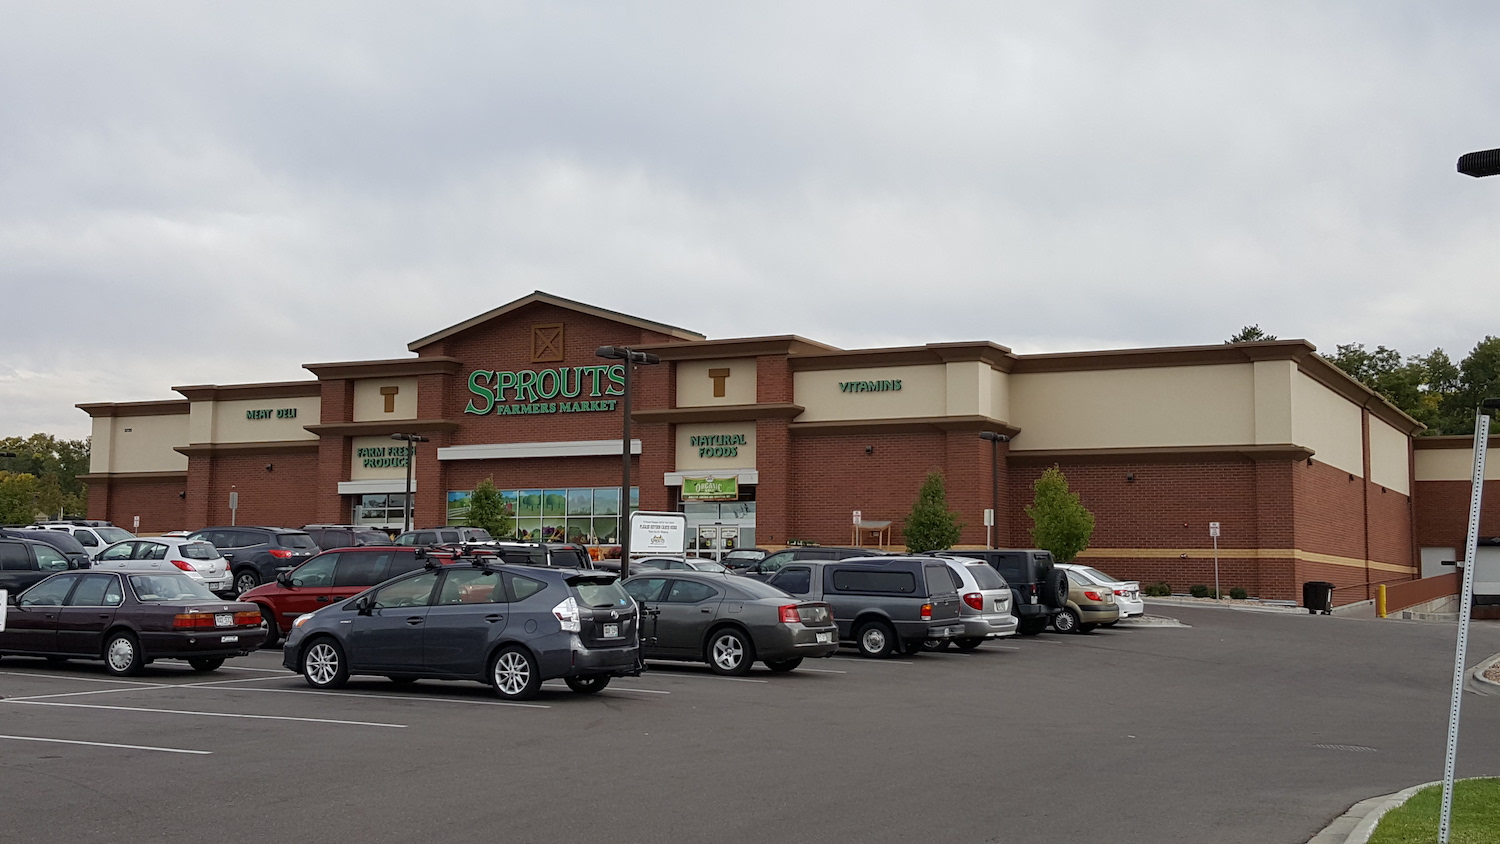 Sprouts (Kipling Street) - Wheat Ridge, CO*